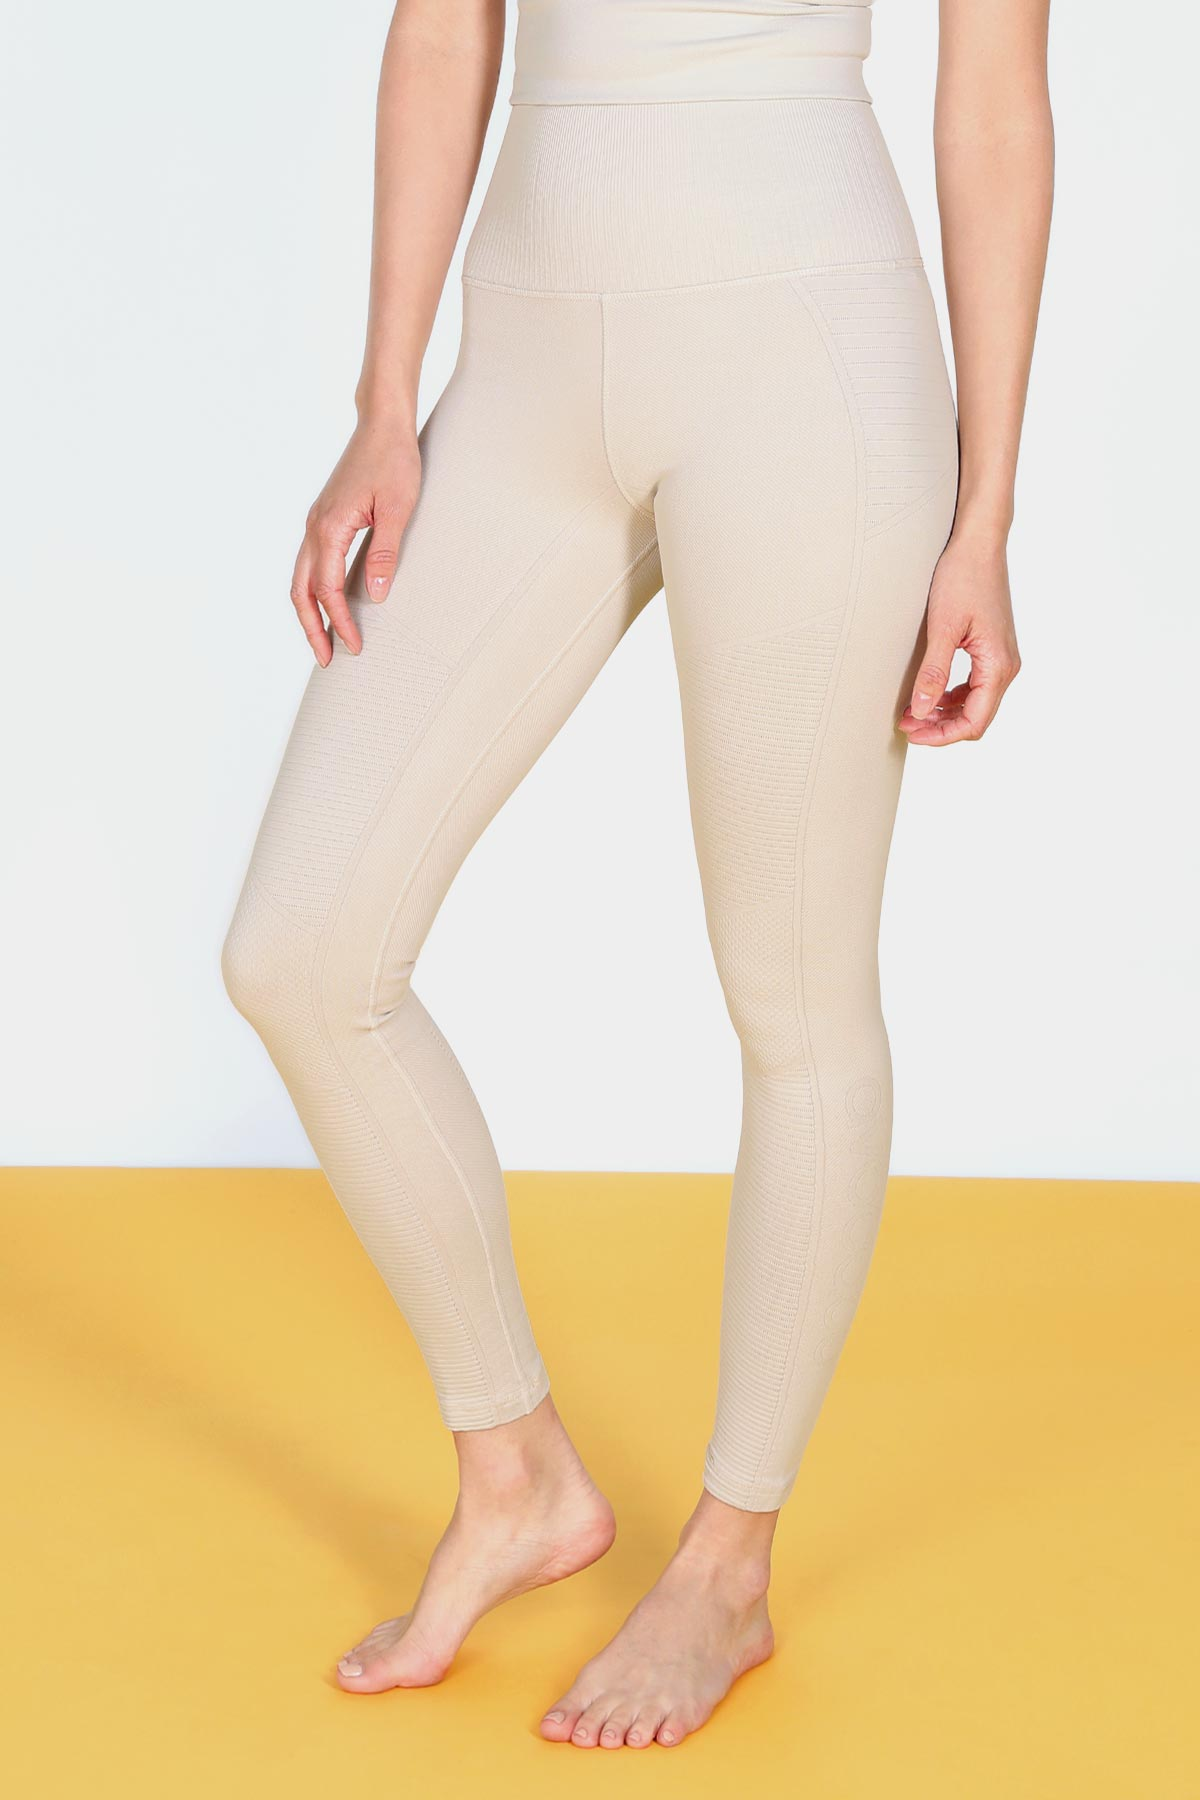 Phoenix Fire Legging in Silver Lining